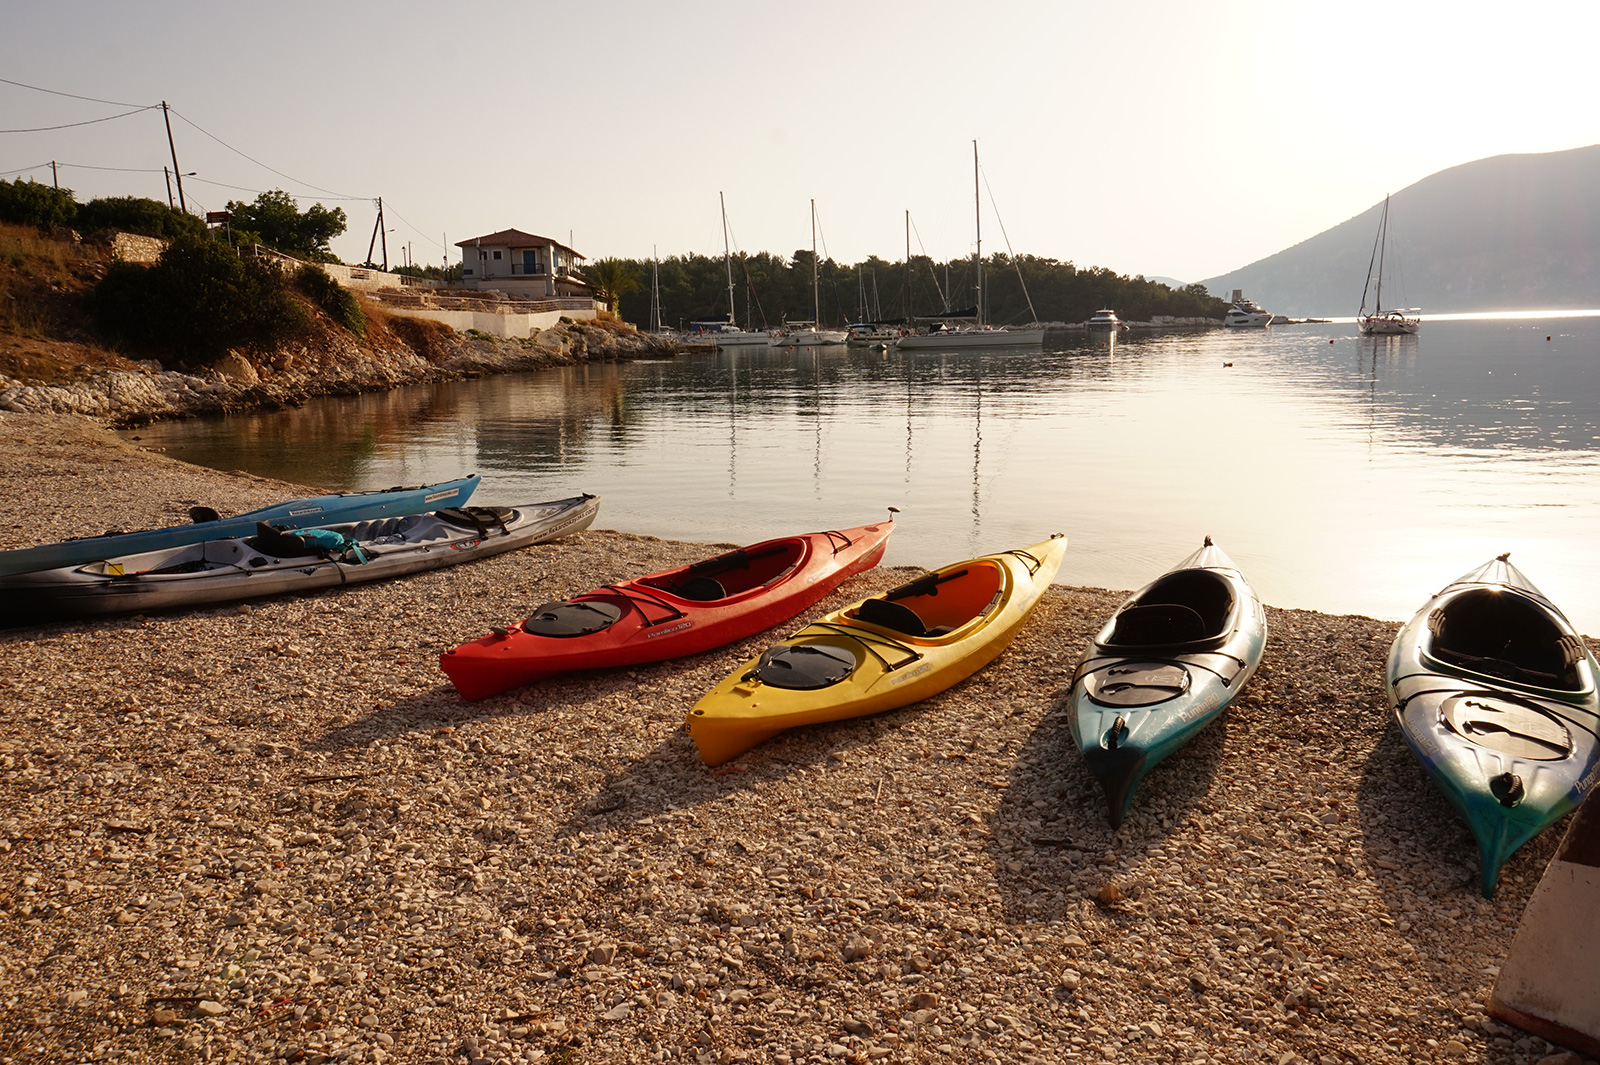 Kefalonia Sea Kayaking - Sea Kayak Kefalonia - Fiskardo Kayaks Kefalonia - Sea Kayaking Tours - Sea Kayak Rental Kefalonia - Kayaking Activities in Kefalonia Greece.